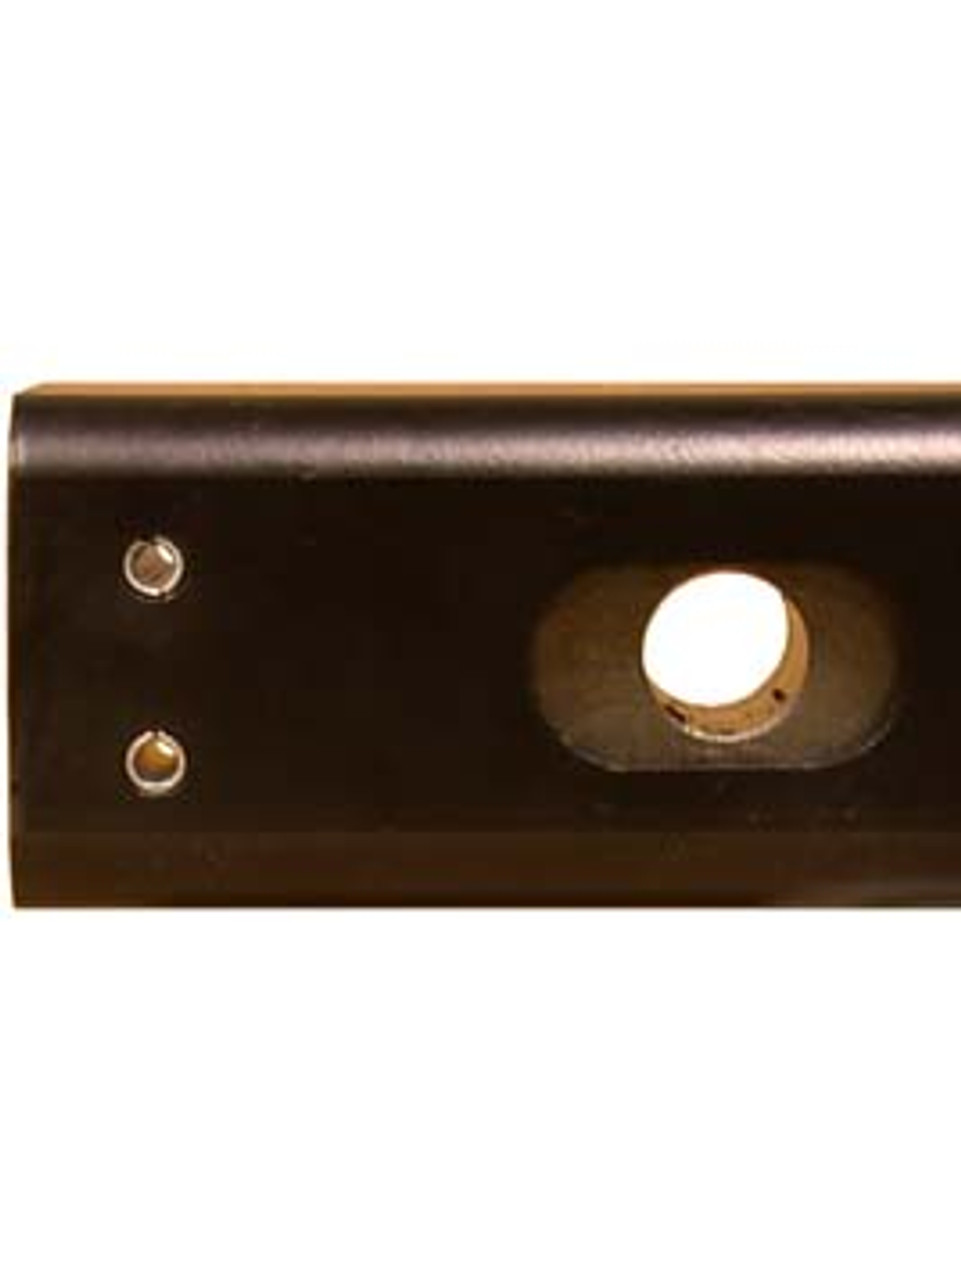 """C4330 --- Cushioned 2"""" Receiver Mounted Pintle Hook Adapter - 4 Holes - 10,000 lb Capacity"""